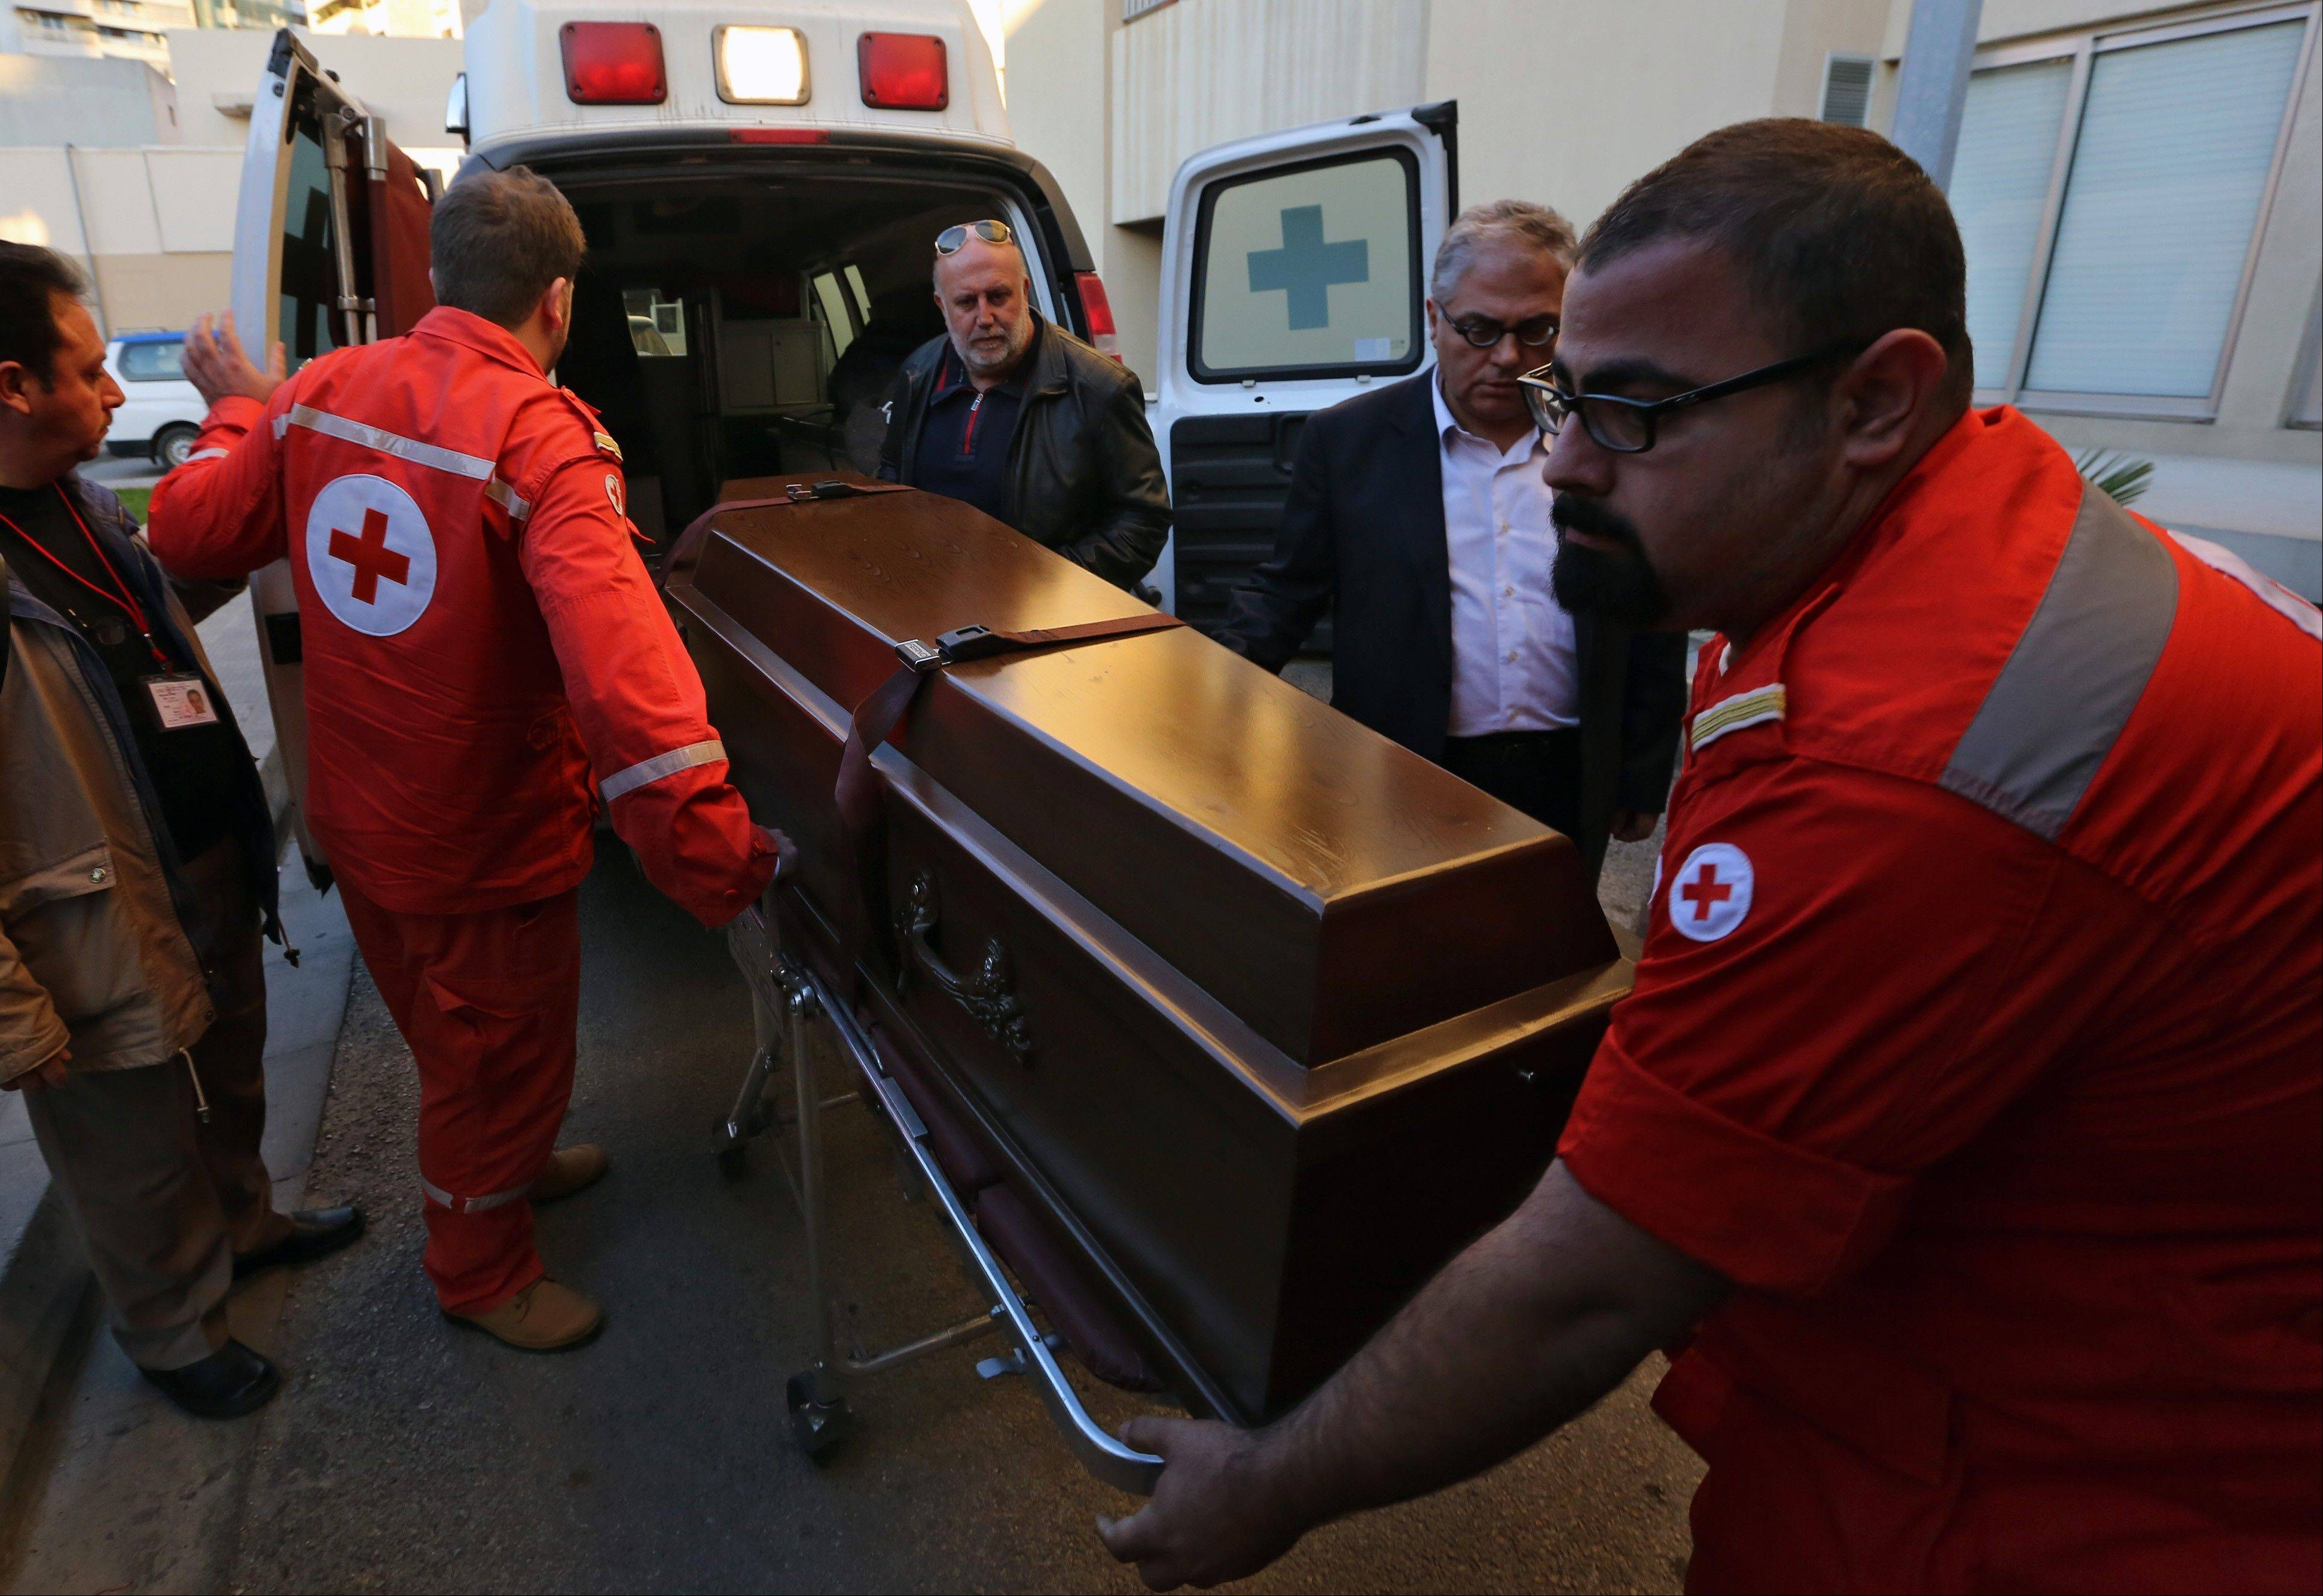 Associated PressLebanese Red Cross workers carry the coffin of British doctor Abbas Khan, 32, who was seized by Syrian government troops in November 2012, into the Hotel-Dieu de France hospital in Beirut, Lebanon, Saturday, Dec. 21. The circumstances in which Khan died while in detention in Syria remain in dispute. A senior British official has accused Syrian President Bashar Assad's government of effectively murdering Khan, while the Syrian authorities say the doctor committed suicide and there was no sign of violence or abuse.